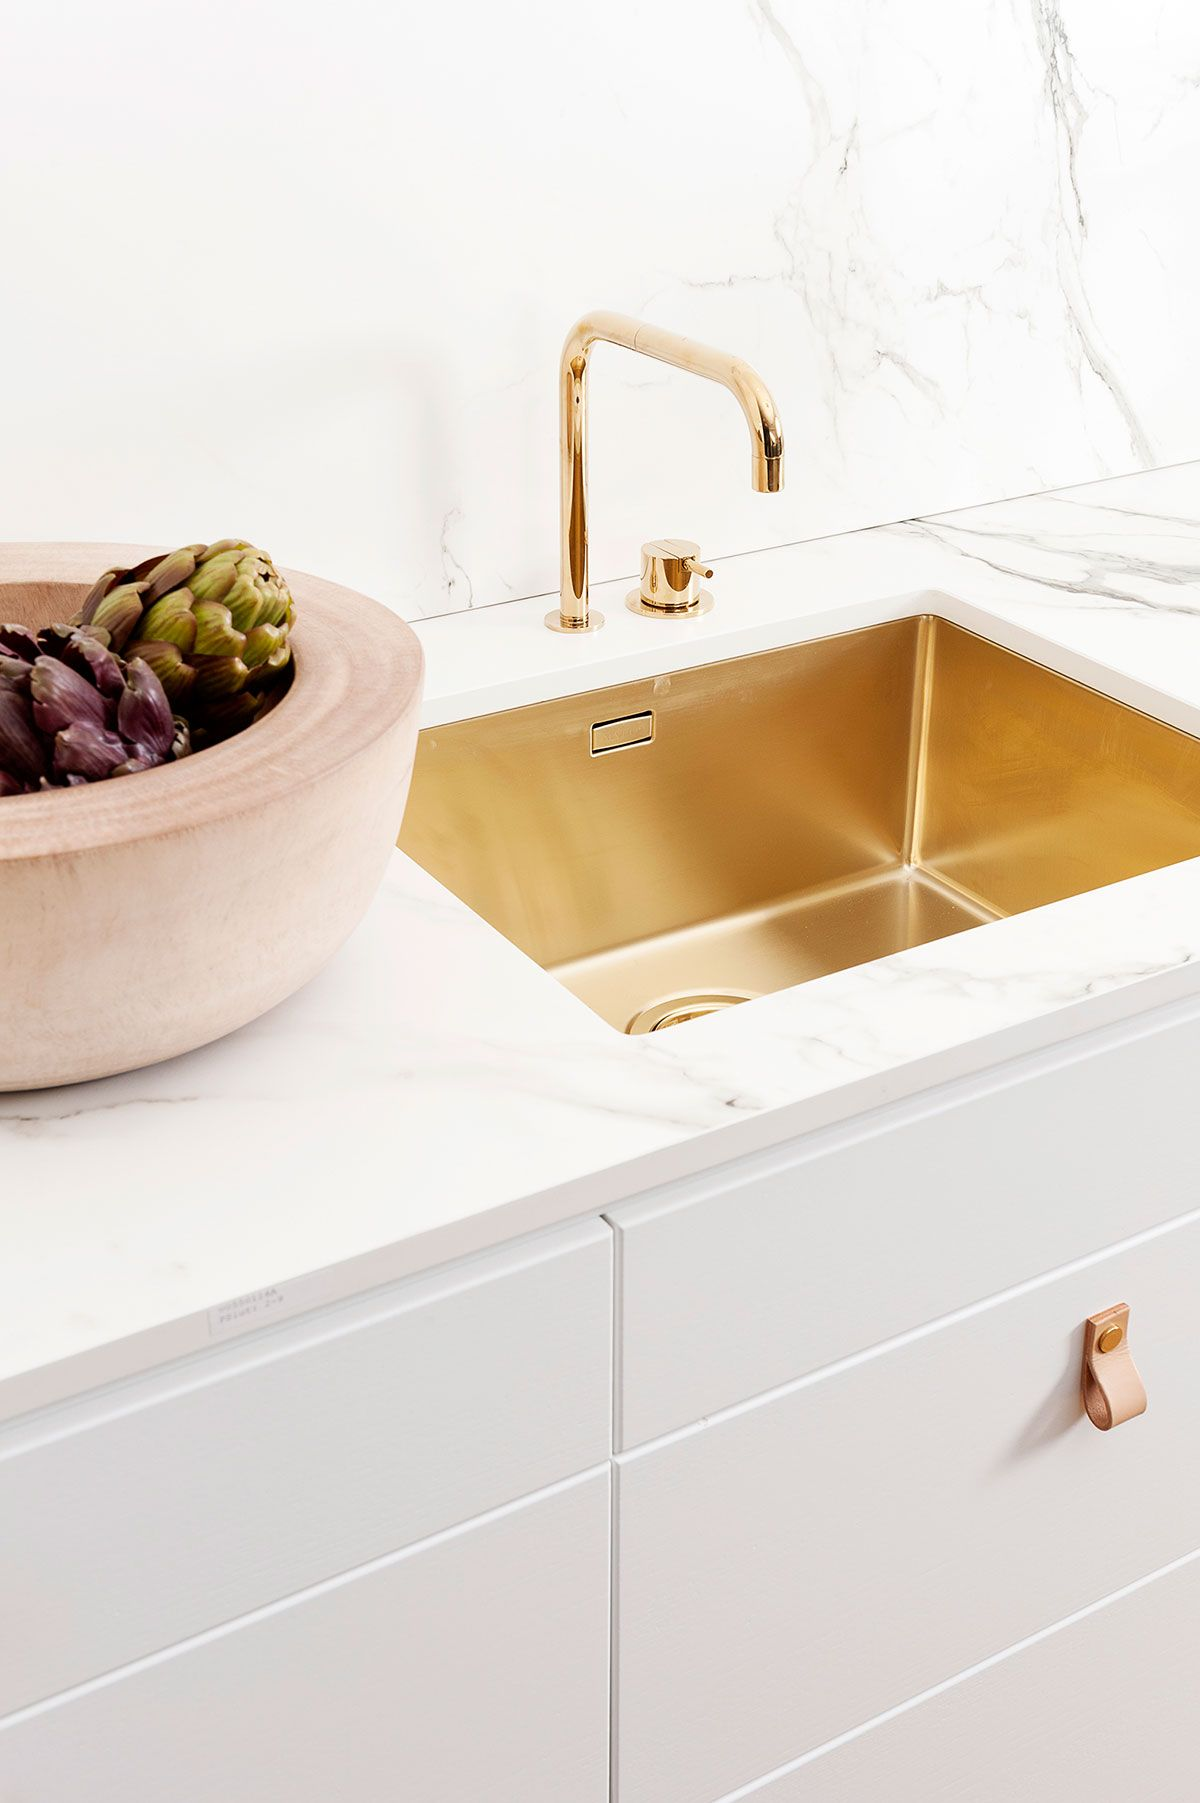 Ive seen gold and marble in the kitchen but a gold sink nice